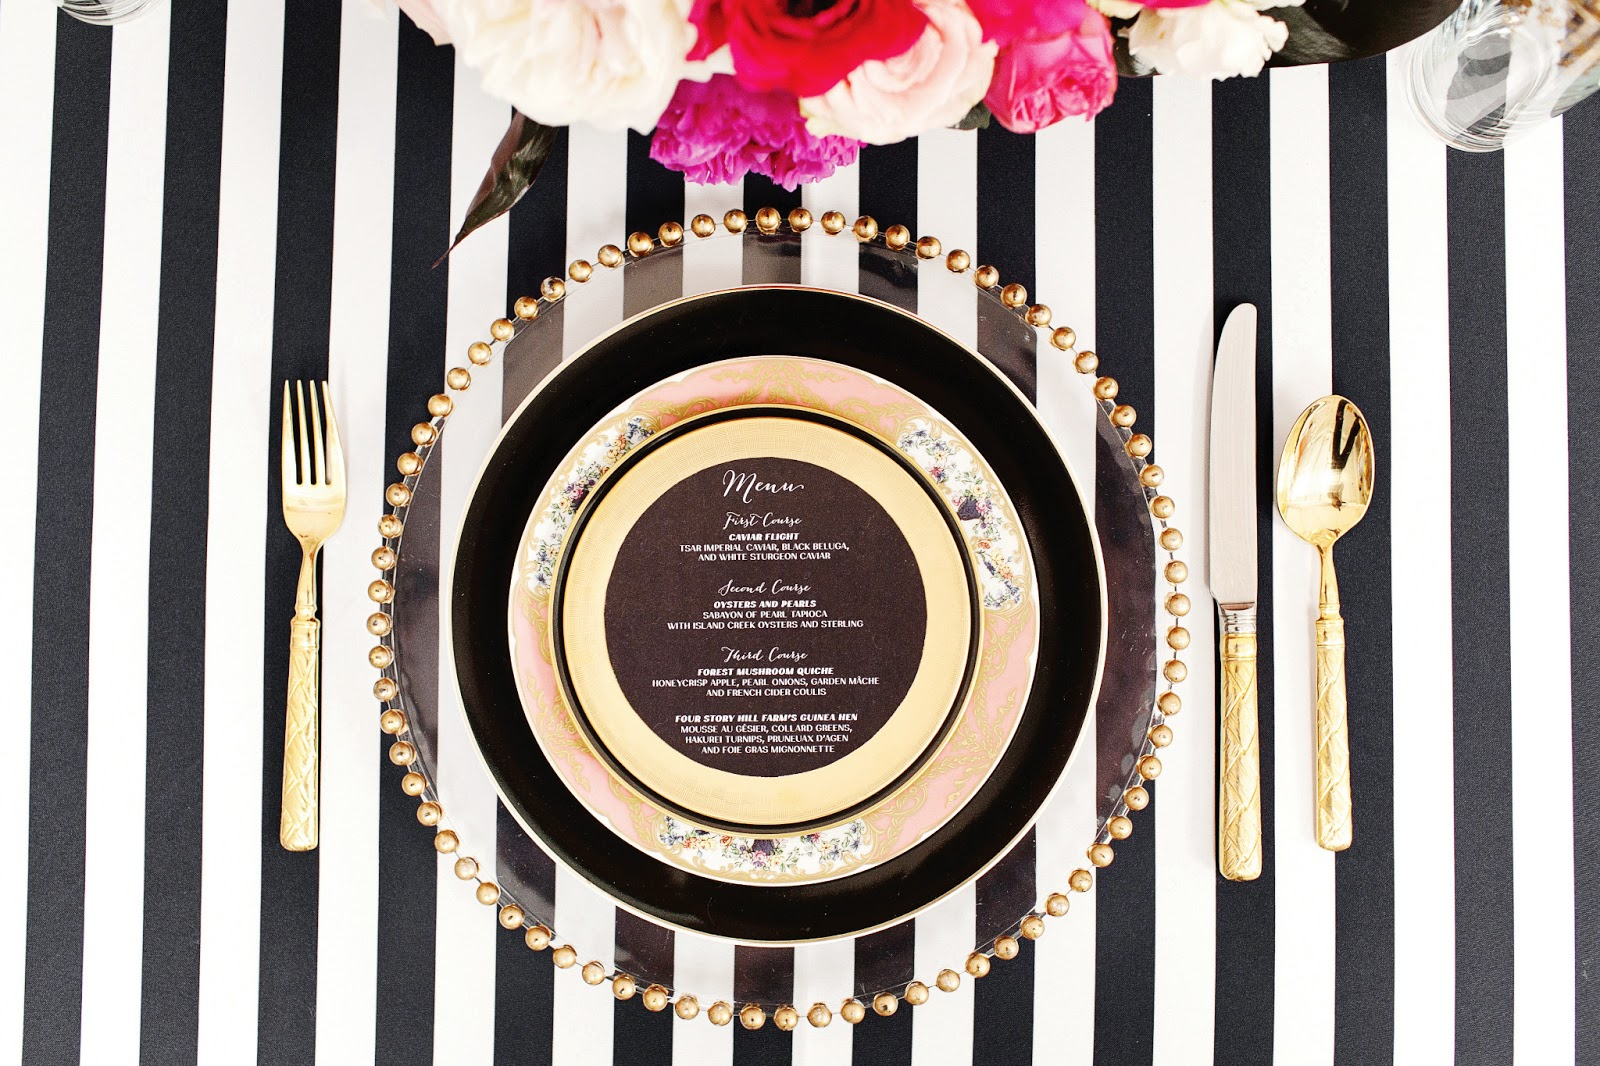 Black and white stripe charger plates -  Glass Charger Black Banded Dinner Plate Sevres Collection Dinner Plate Barcelona Gold Salad Plate Dynasty 24k Flatware Black White Striped Linen